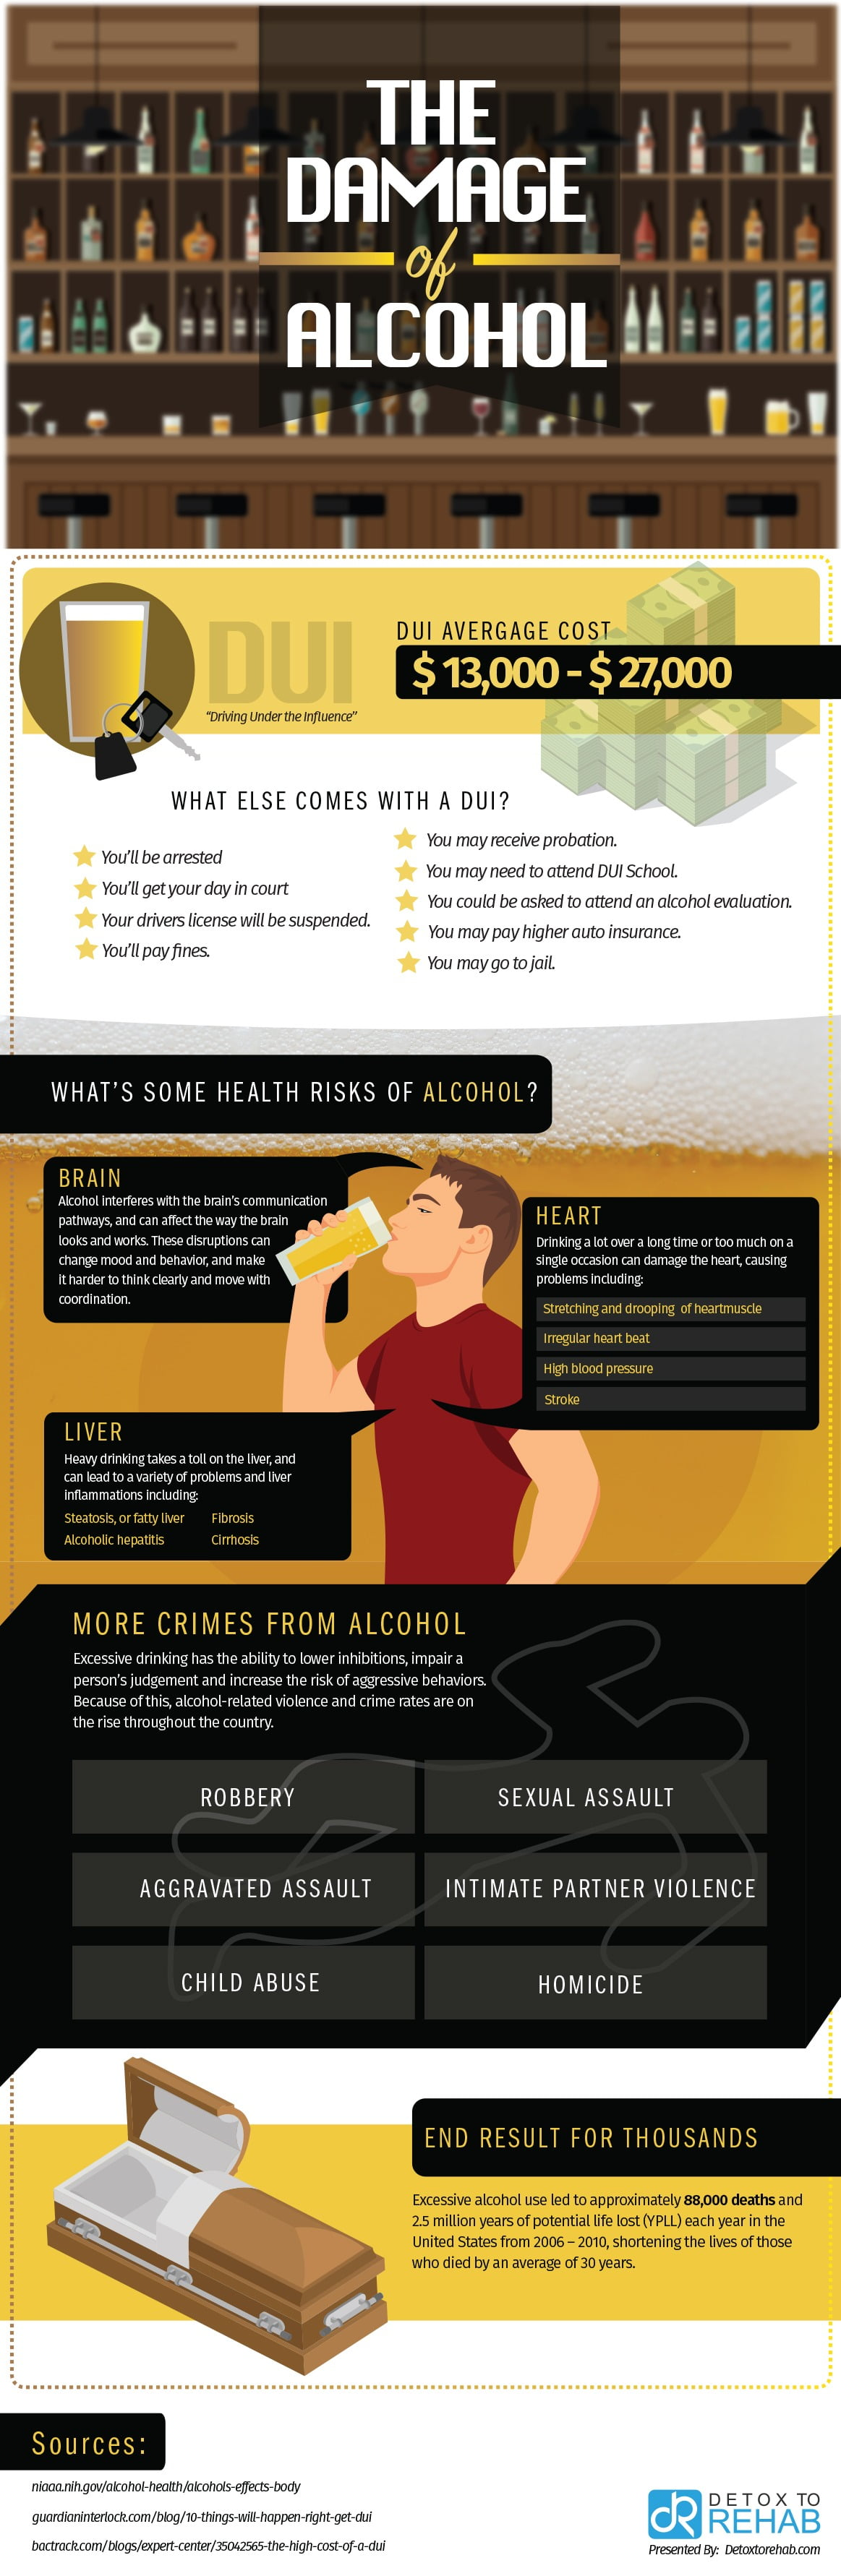 alcoholism 11 Disclaimer: the results of this self-test are not intended to constitute a diagnosis of alcoholism and should be used solely as a guide to understanding your alcohol use and the potential health issues involved with it the information provided here cannot substitute for a full evaluation by a health professional.